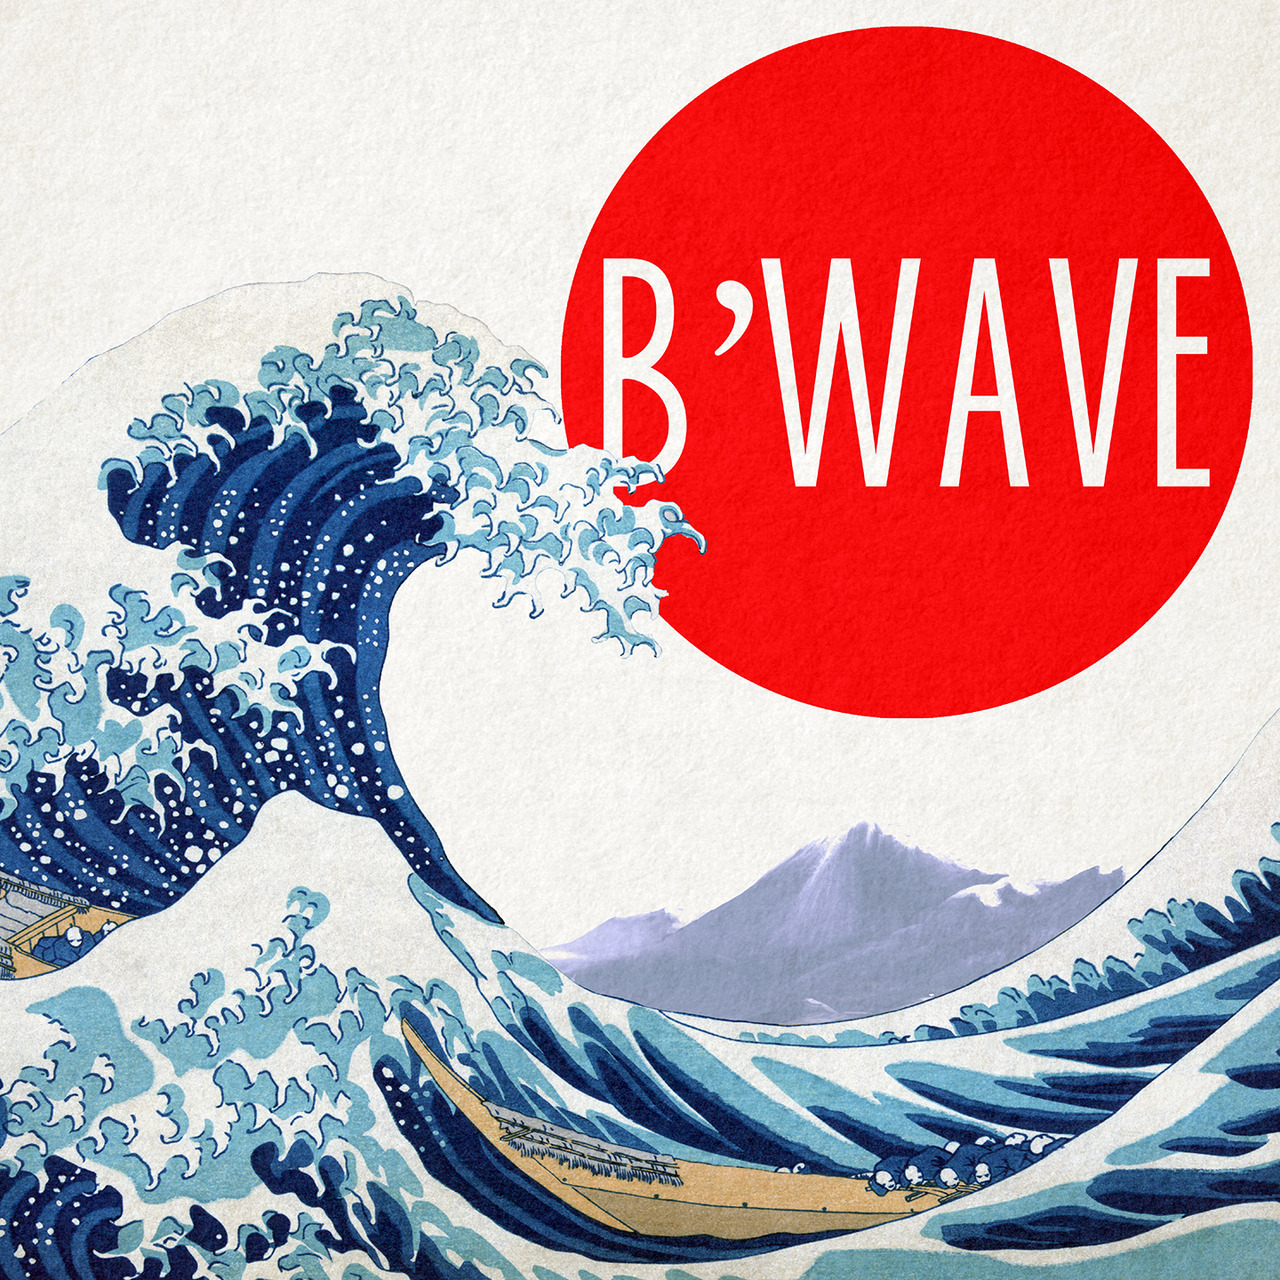 B'Wave DELUXE by Max Maven presented by Nick Locapo